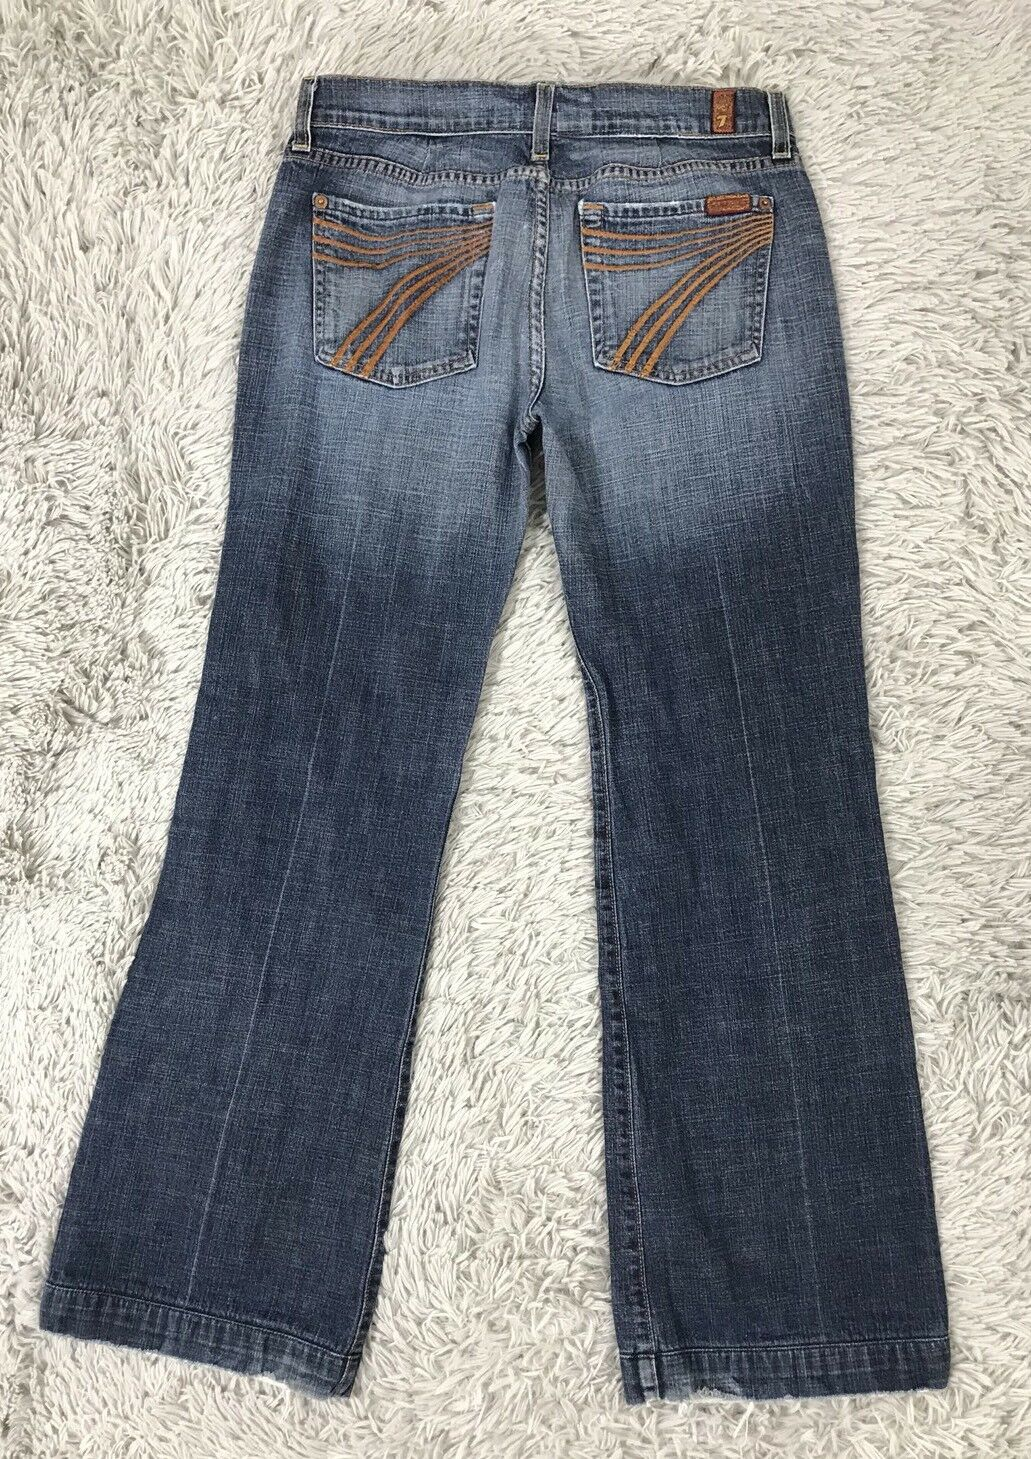 7 FOR ALL MANKIND DOJO WOMENS JEANS Medium 29 (29x29) Flare orange Stitch